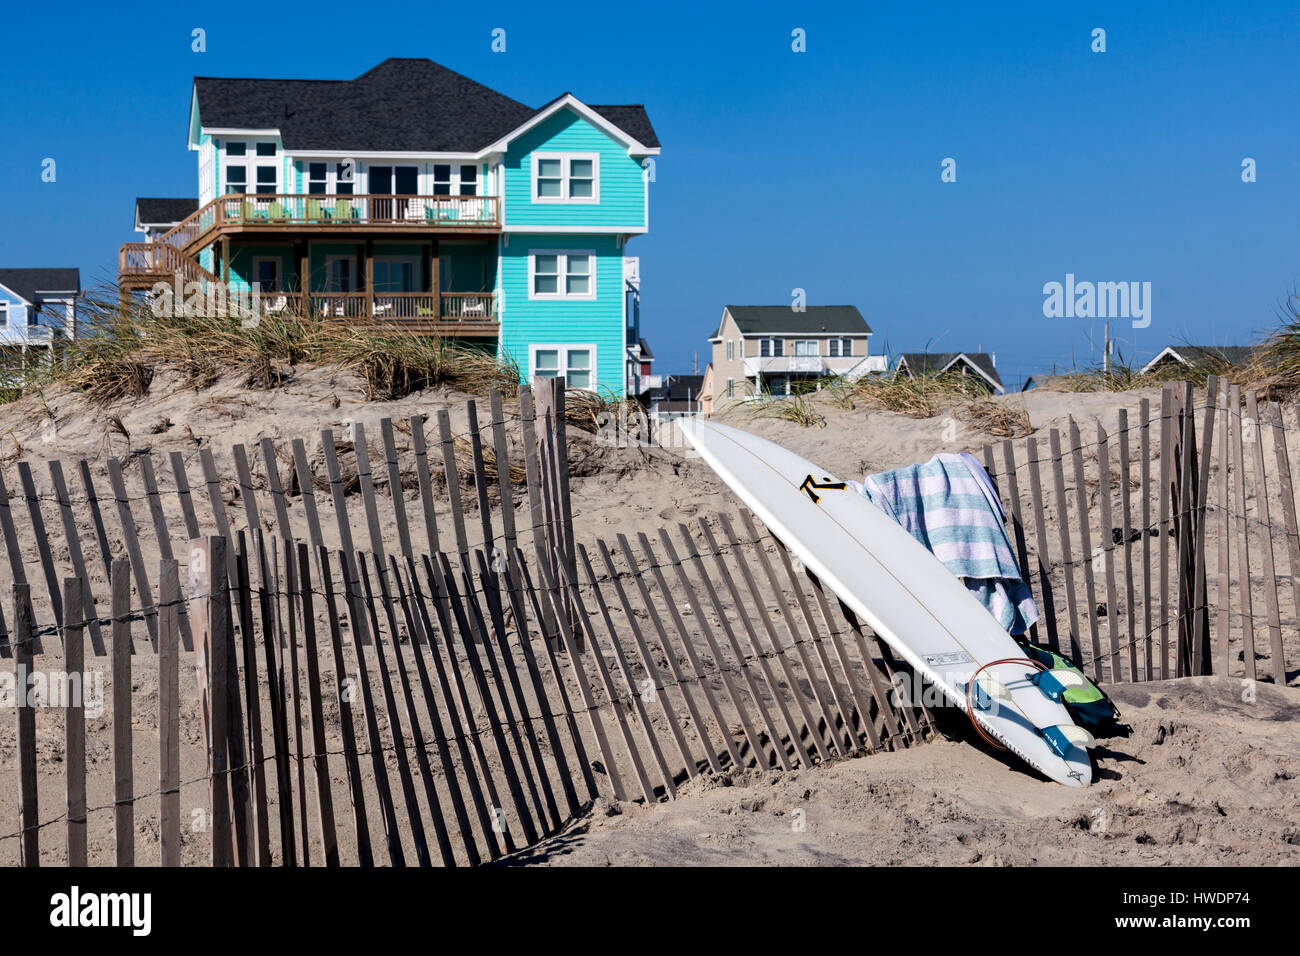 NC00746-00...NORTH CAROLINA - Surfboard, sand fence and beach houses at Rodanthe on the Outer Banks, Cape Hatteras Stock Photo